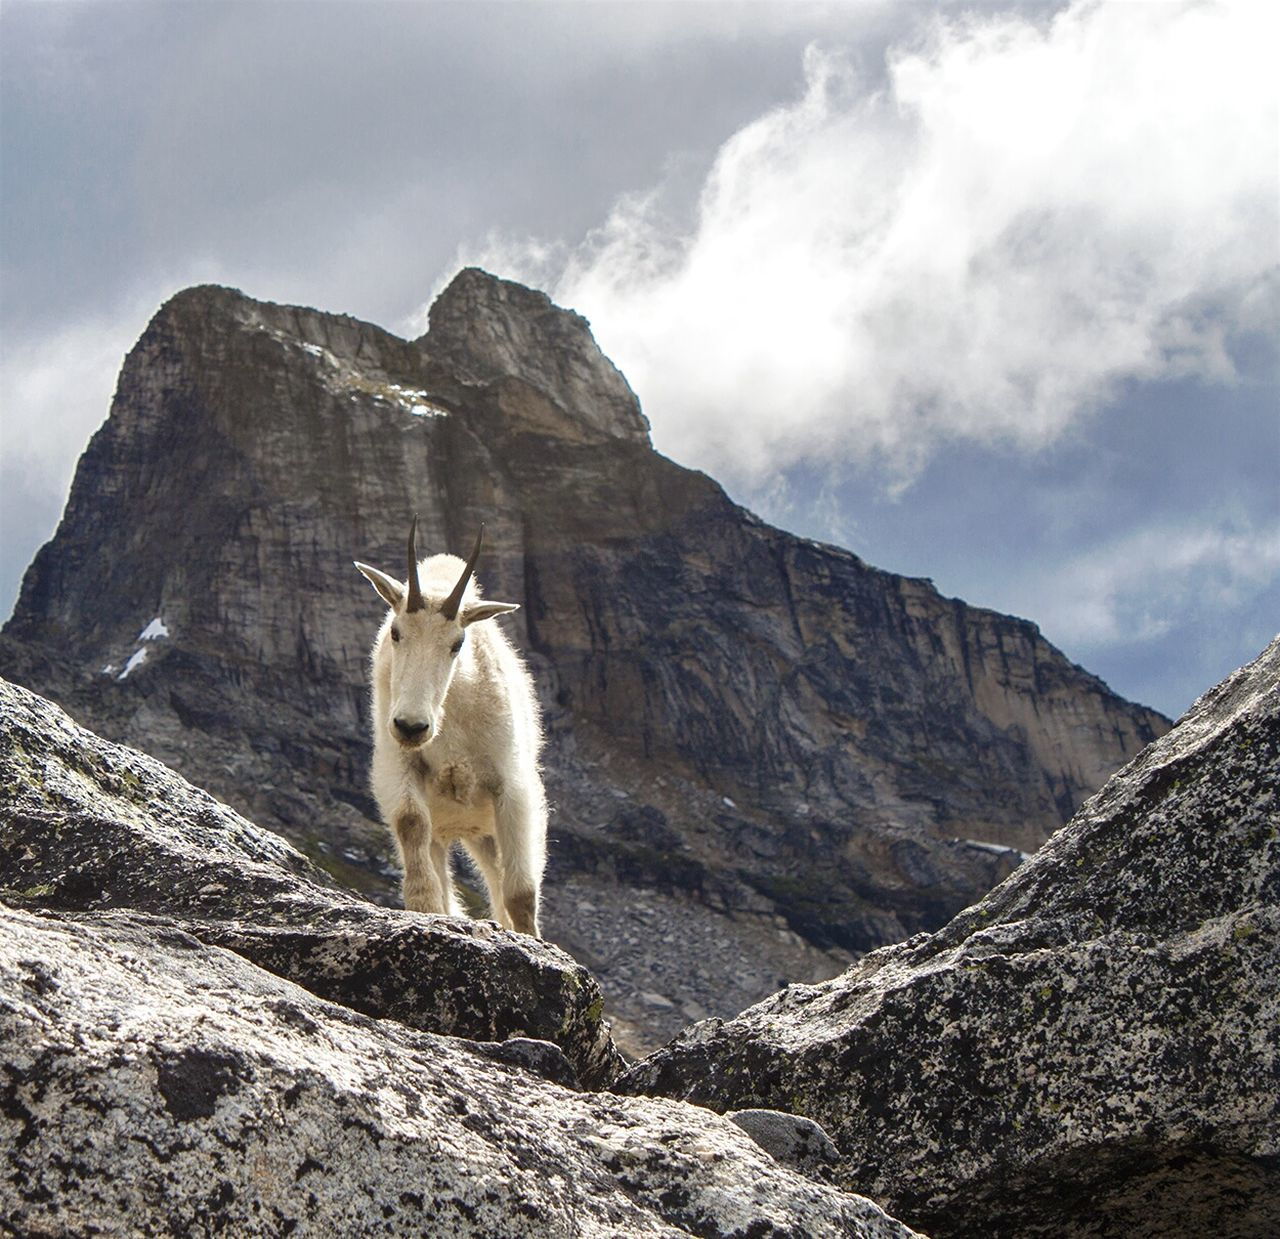 Wildlife Wildlife Photography Valhalla Provincial Park British Columbia Bc Canada Mountain Goats Mountain Range